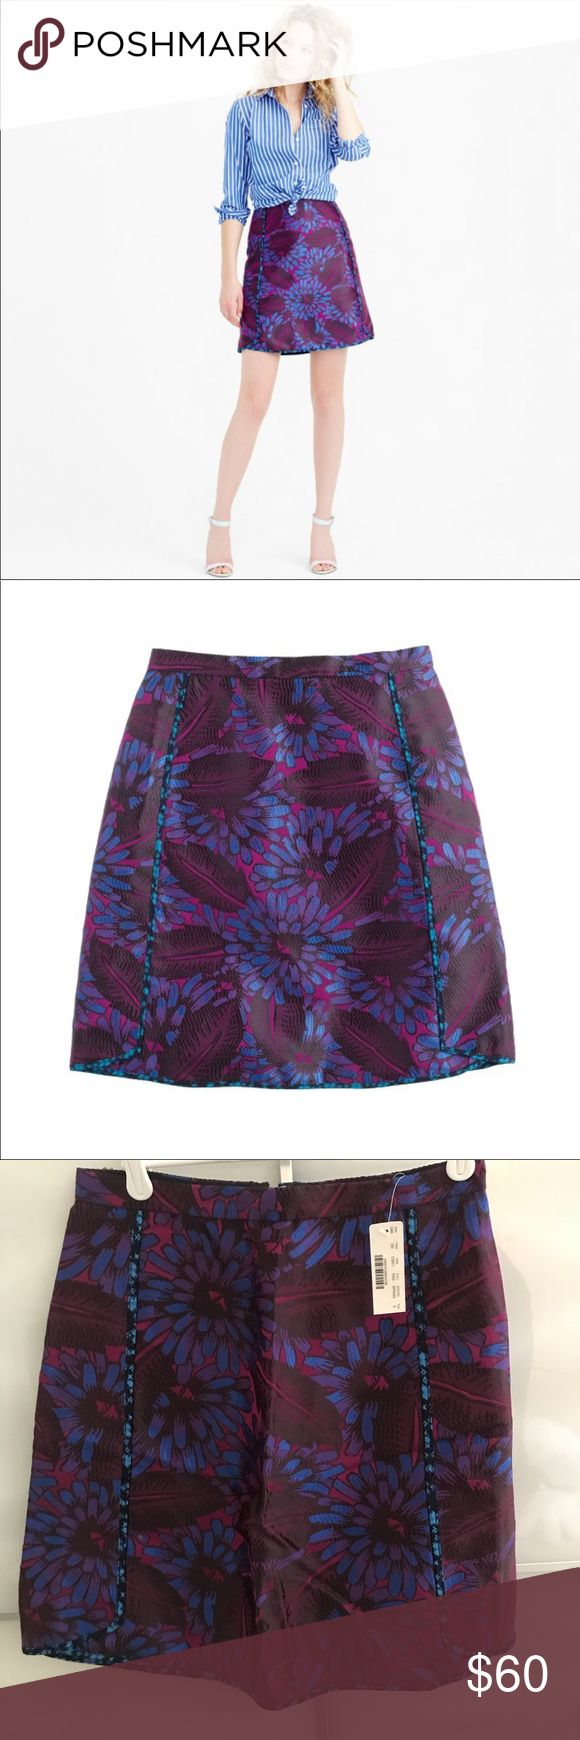 JCrew skirt in midnight floral Never worn before. Too big on me. Feel free to offer! Length: 18-18.5 inches. Waist: Approximately 14 inches. J. Crew Skirts